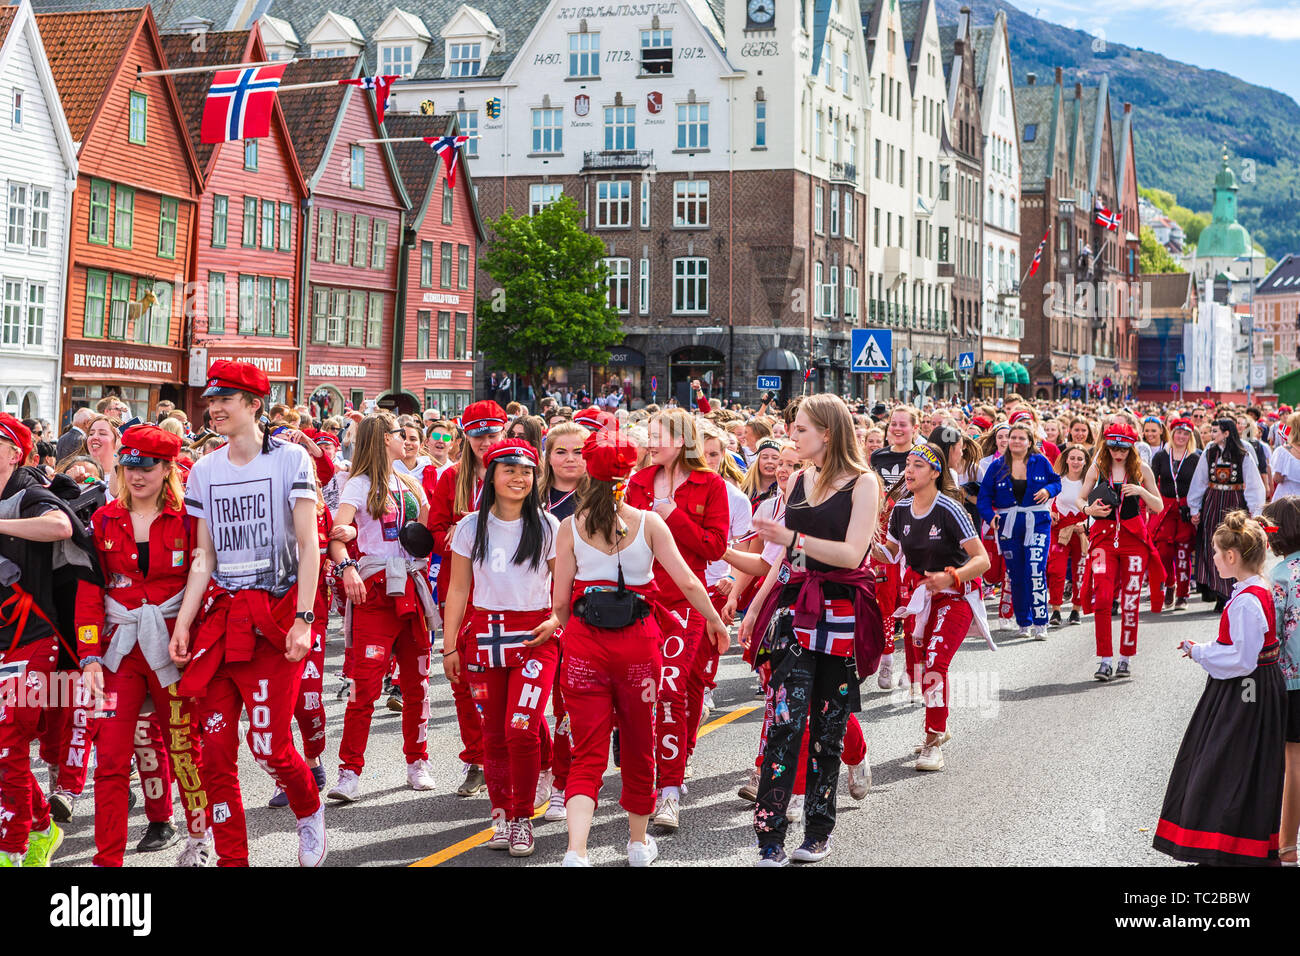 BERGEN, NORWAY - April 14, 2019: Old firefighters vehicle on street in Bergen, Norway. Stock Photo